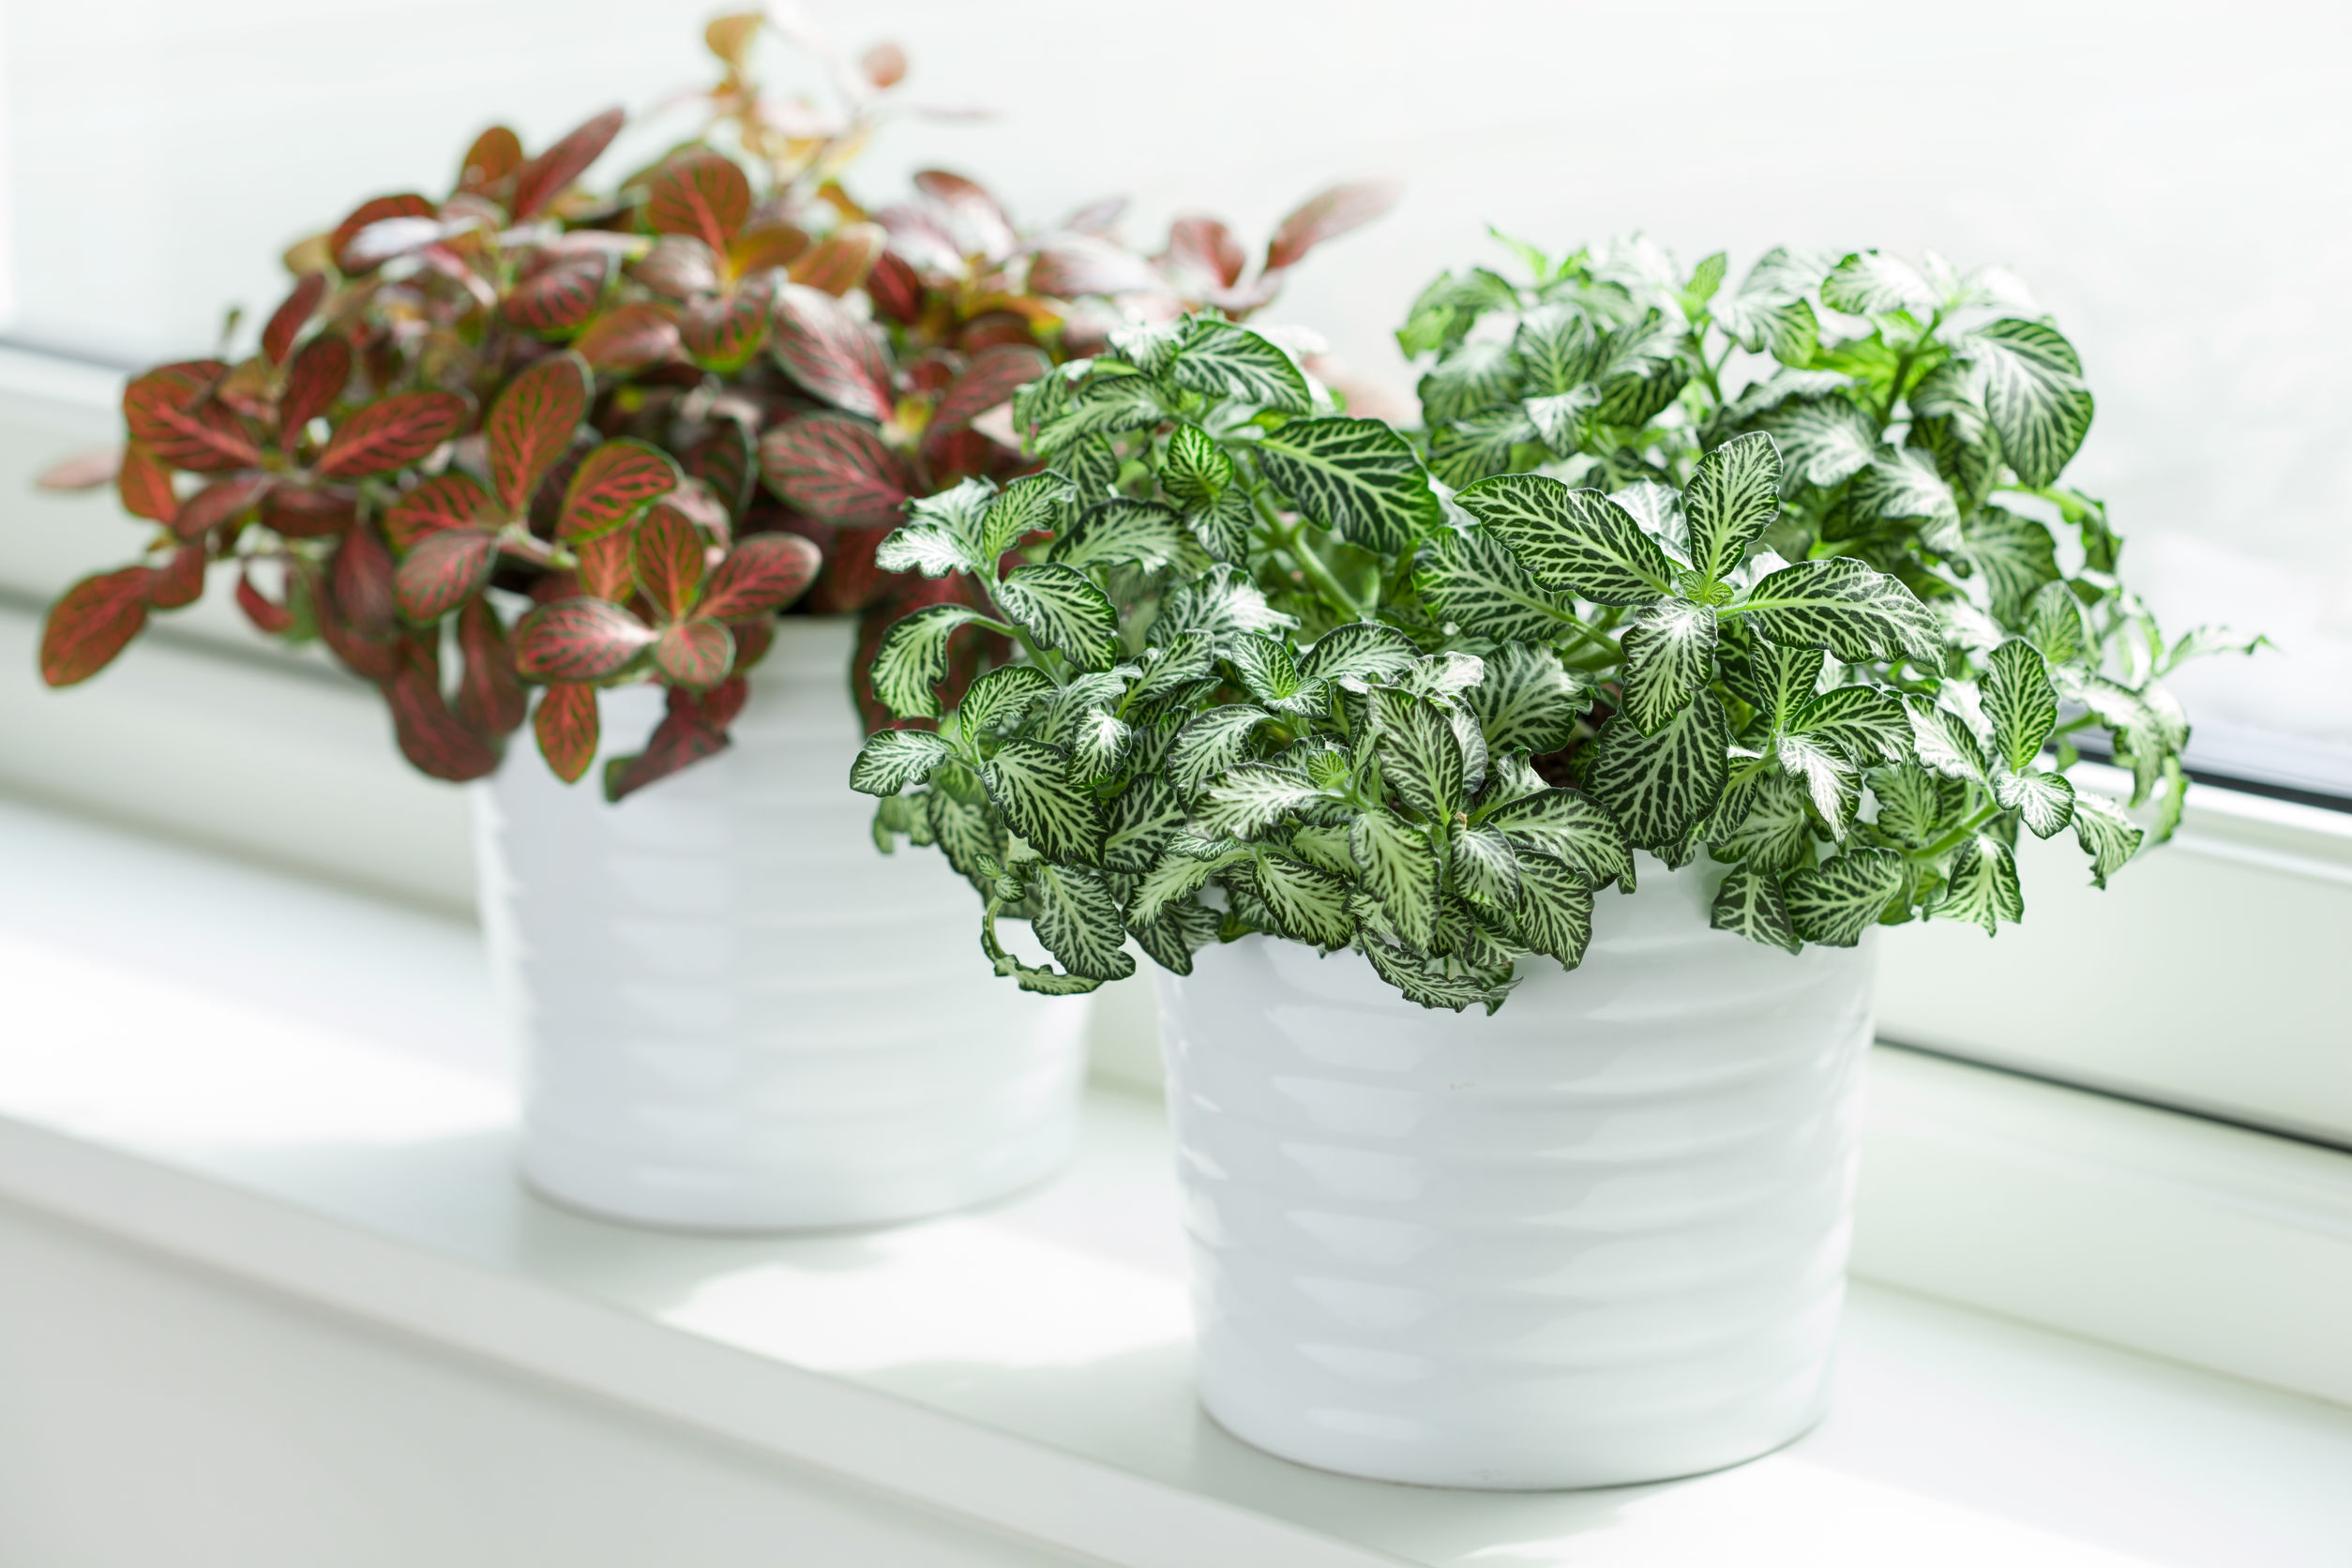 The fittonia house plant is a common household plant that is non-toxic to cats